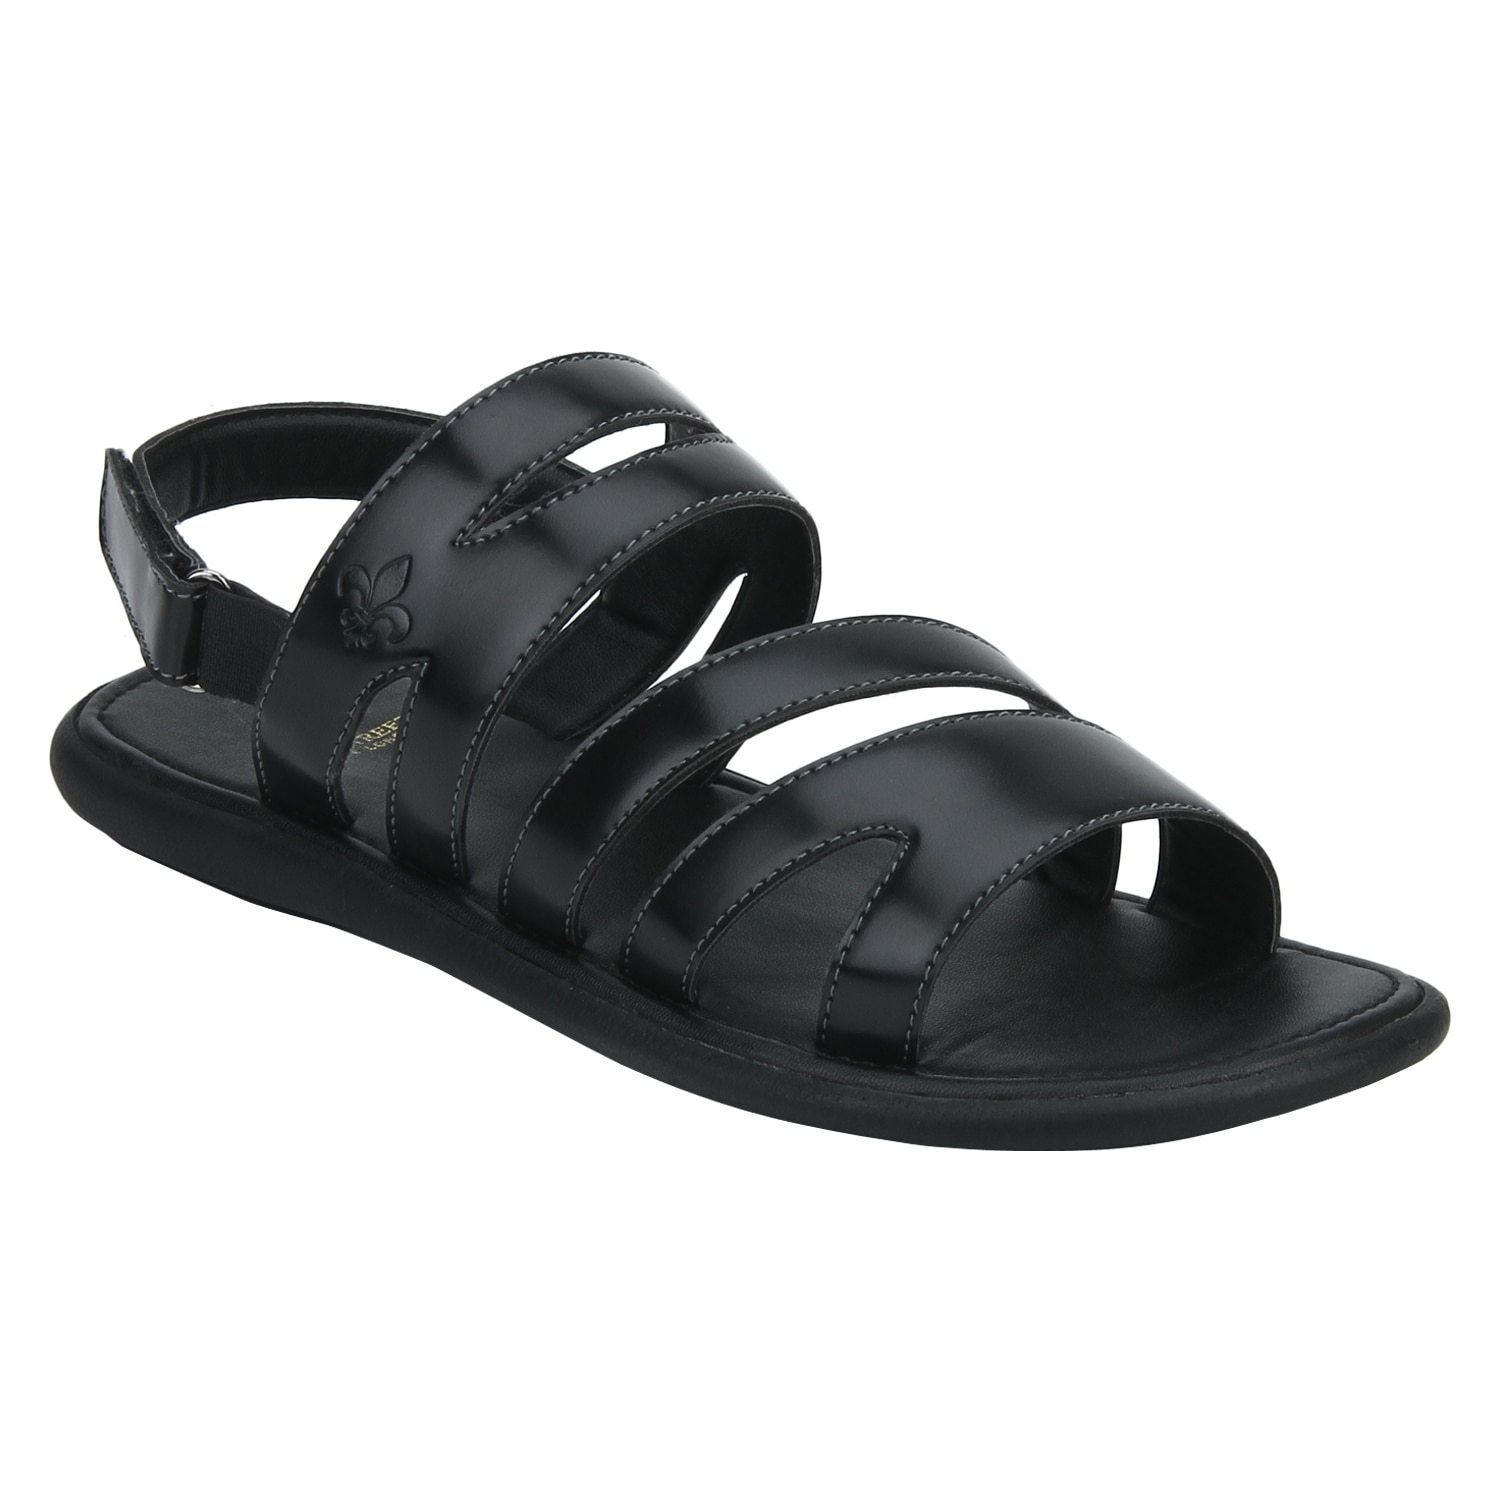 Bond Street By Red Tape Men Black Sandals-RSP0501 BLK-11